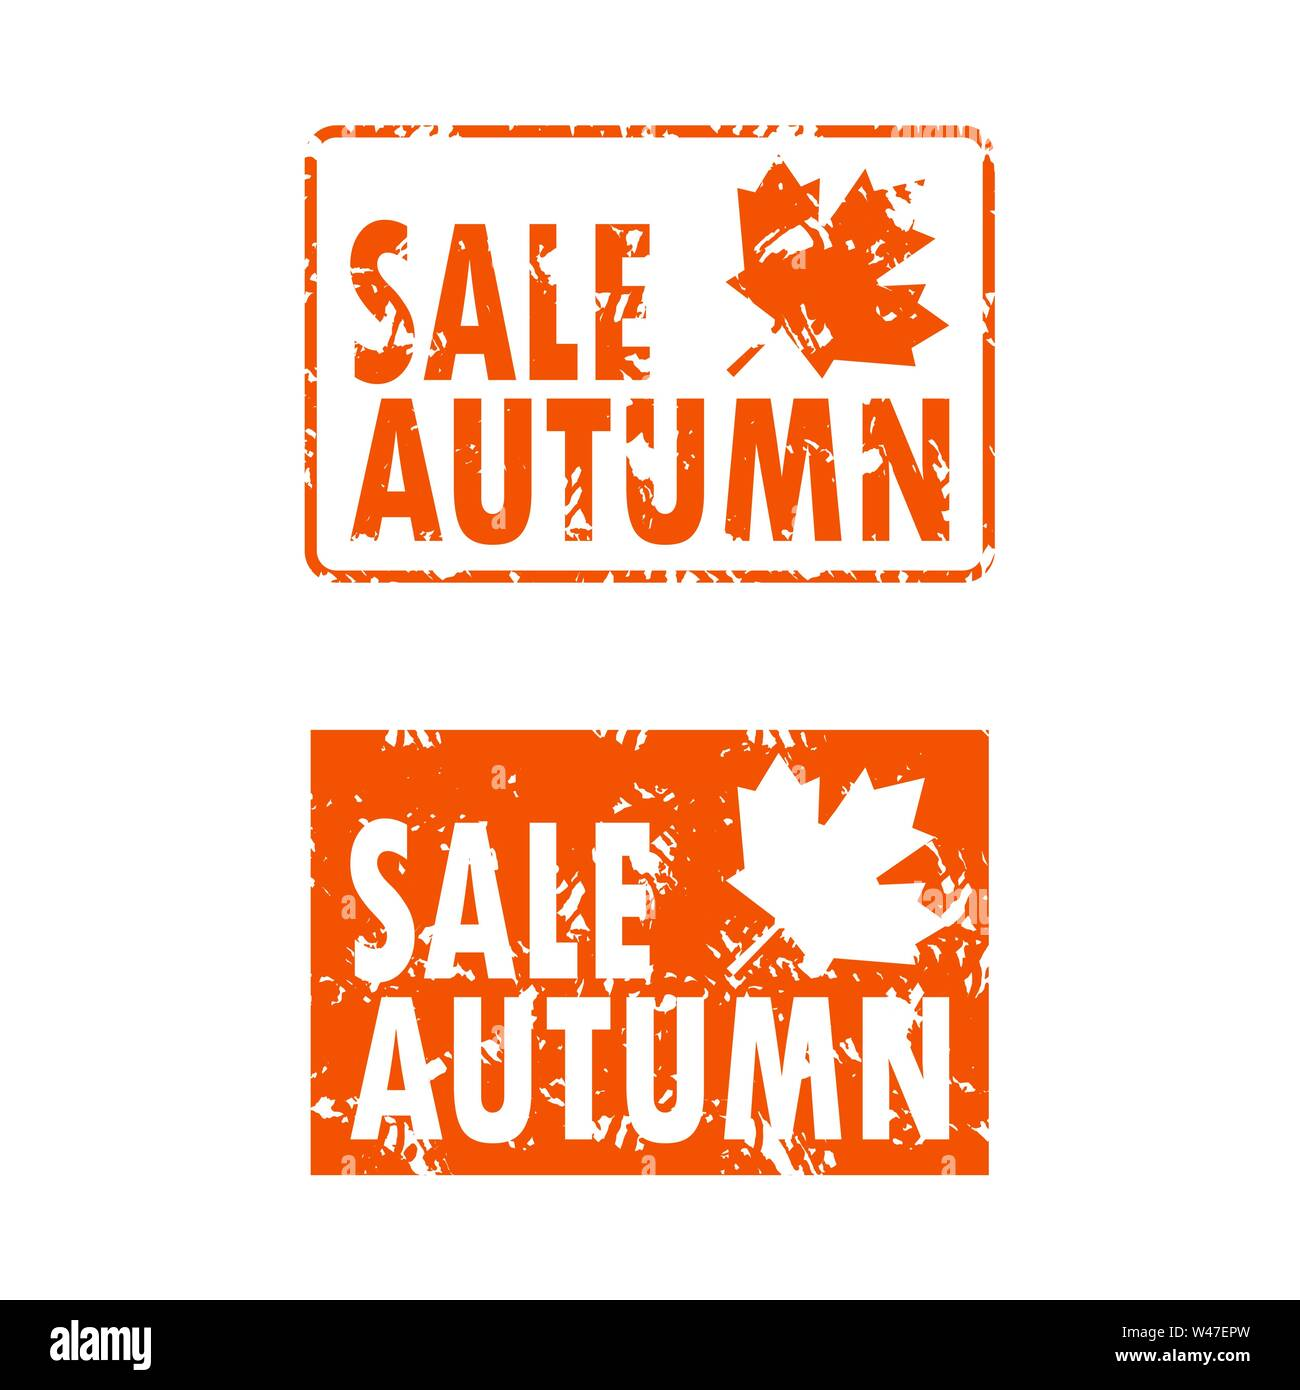 Seal rubber stamp autumn sale set orange color. Vector promotion set sell-out seal for fashion store, autumnal advertising shopping rubber stamp illus - Stock Image